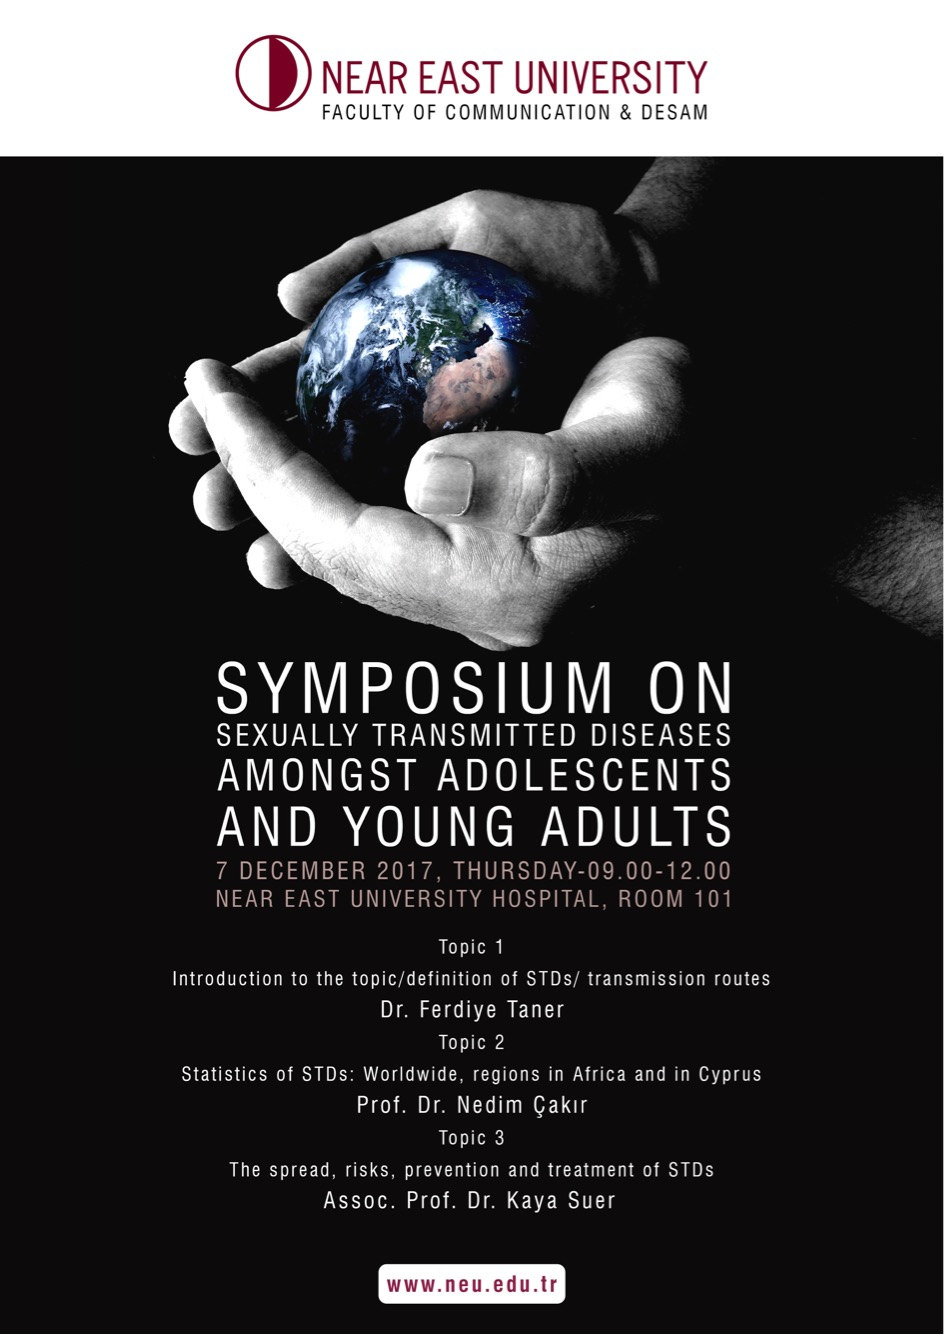 Symposium: Sexually Transmitted Diseases Amongst Adolescents and Young Adults